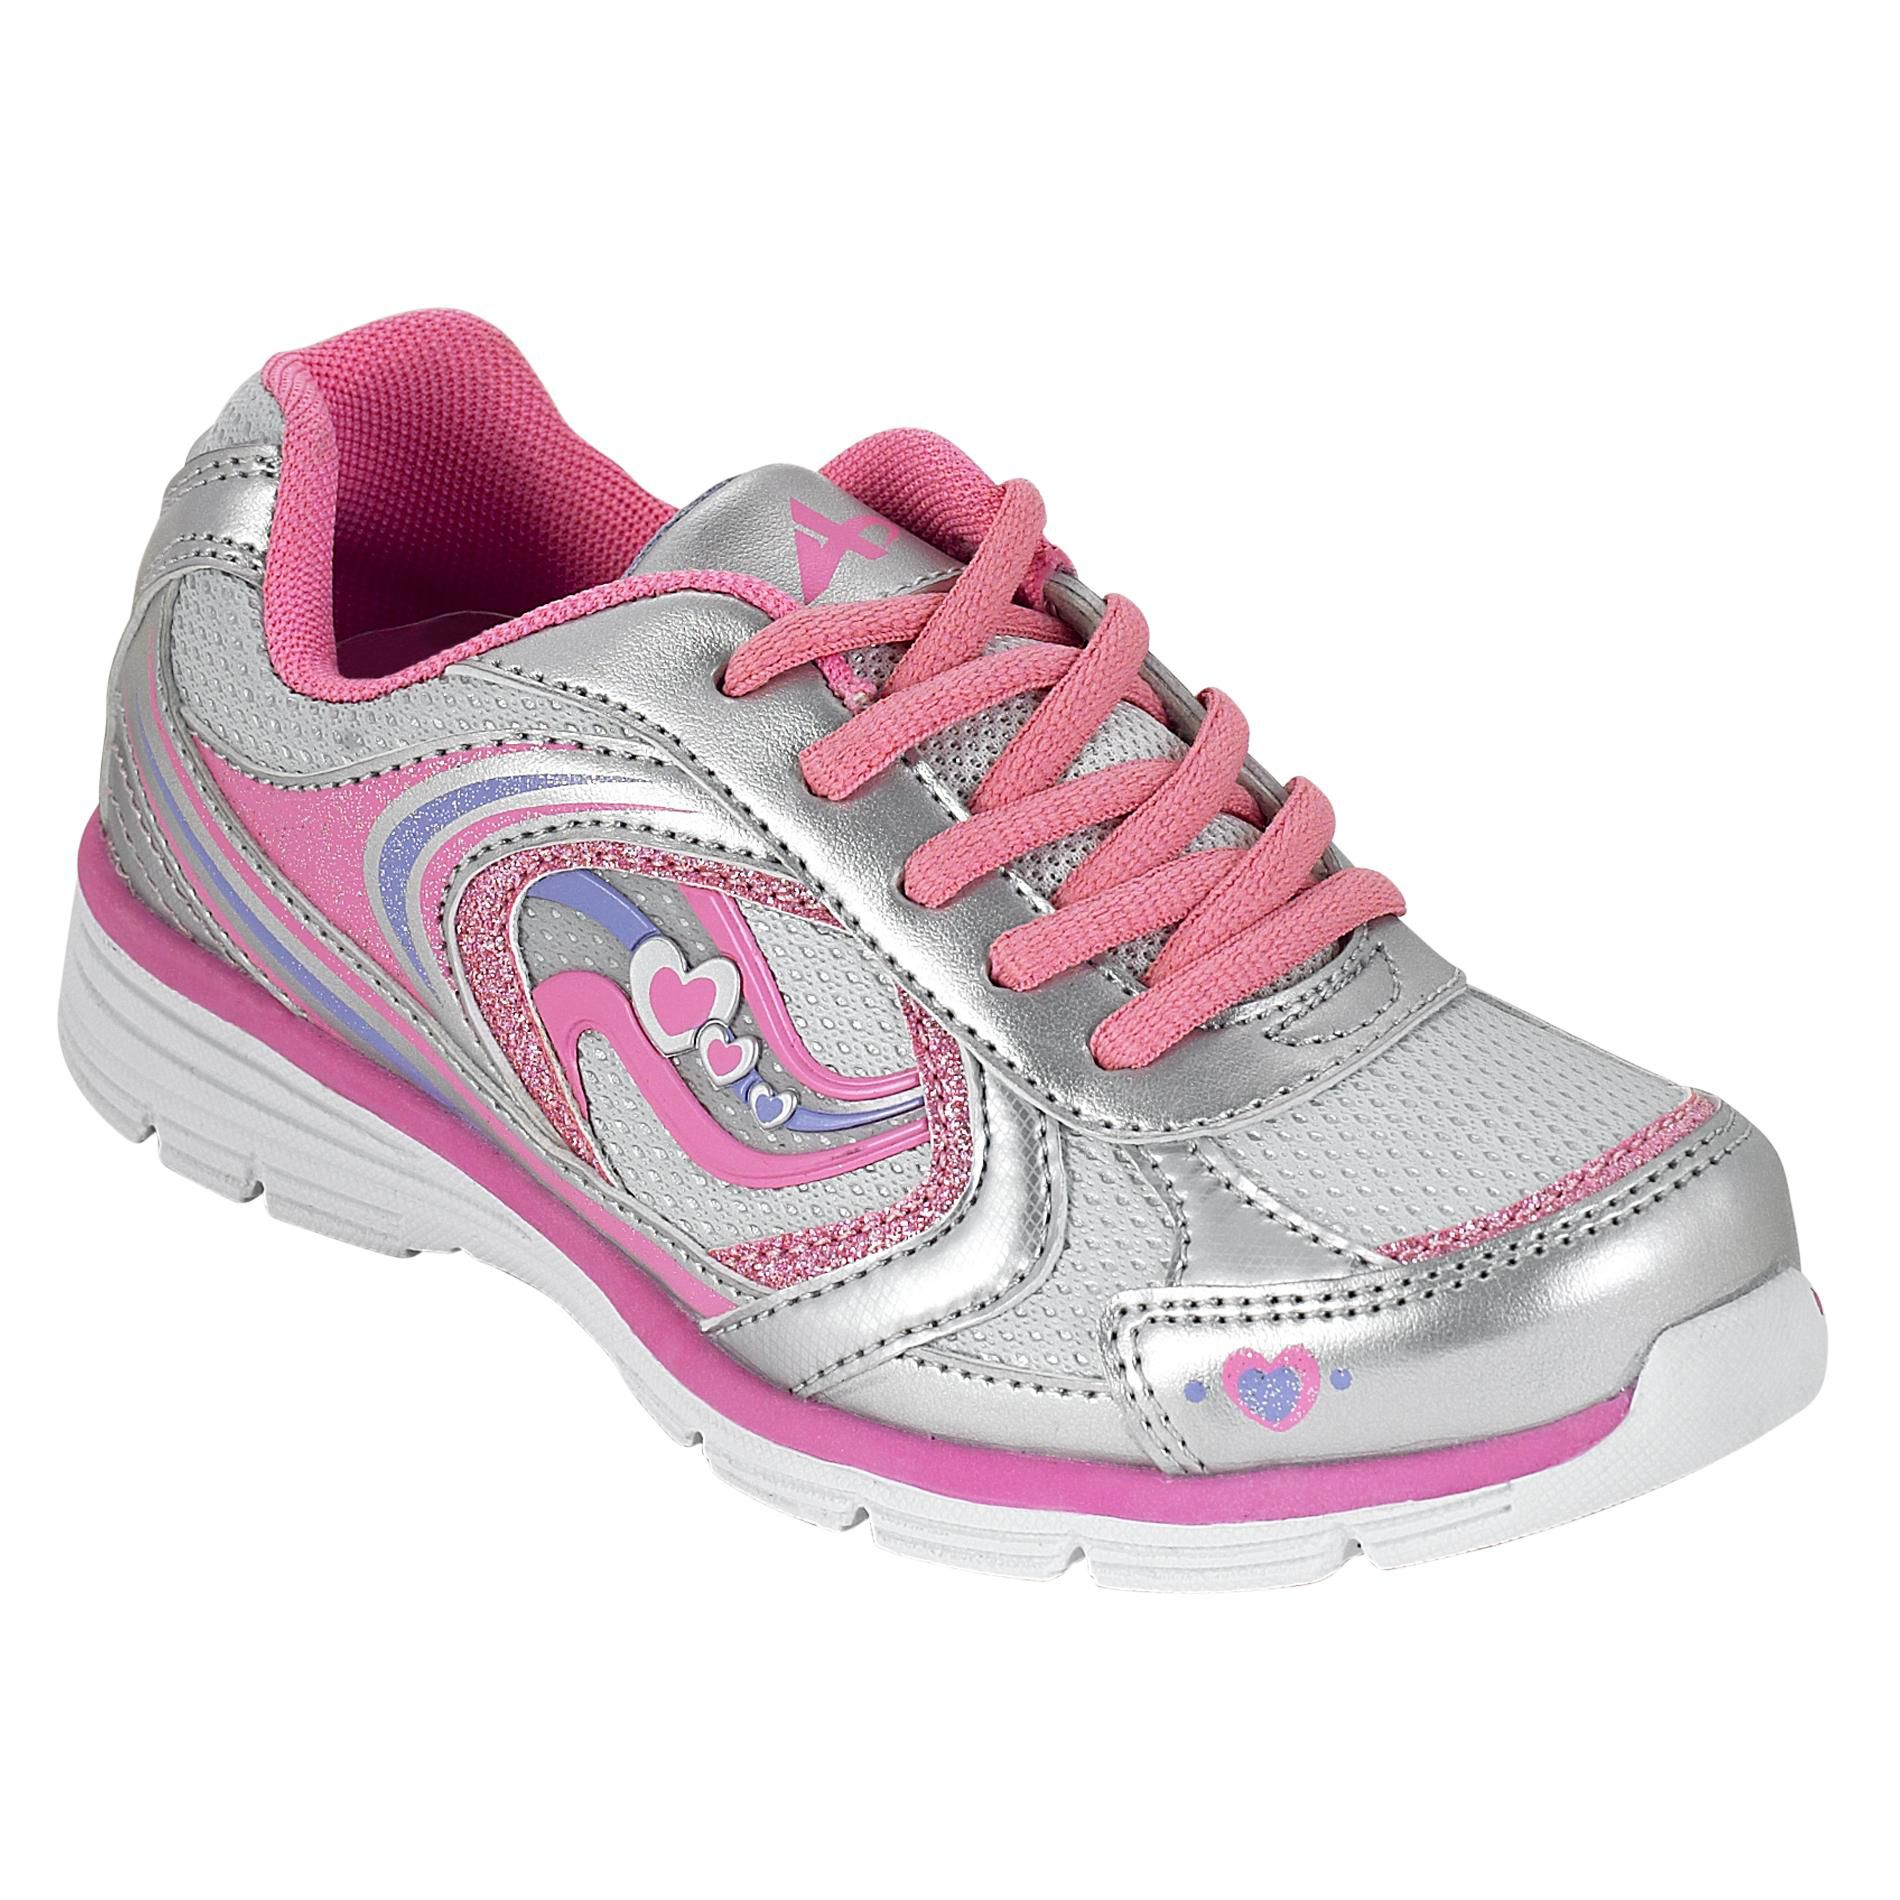 Girl's Lakota2 Athletic Shoe - Pink - Every